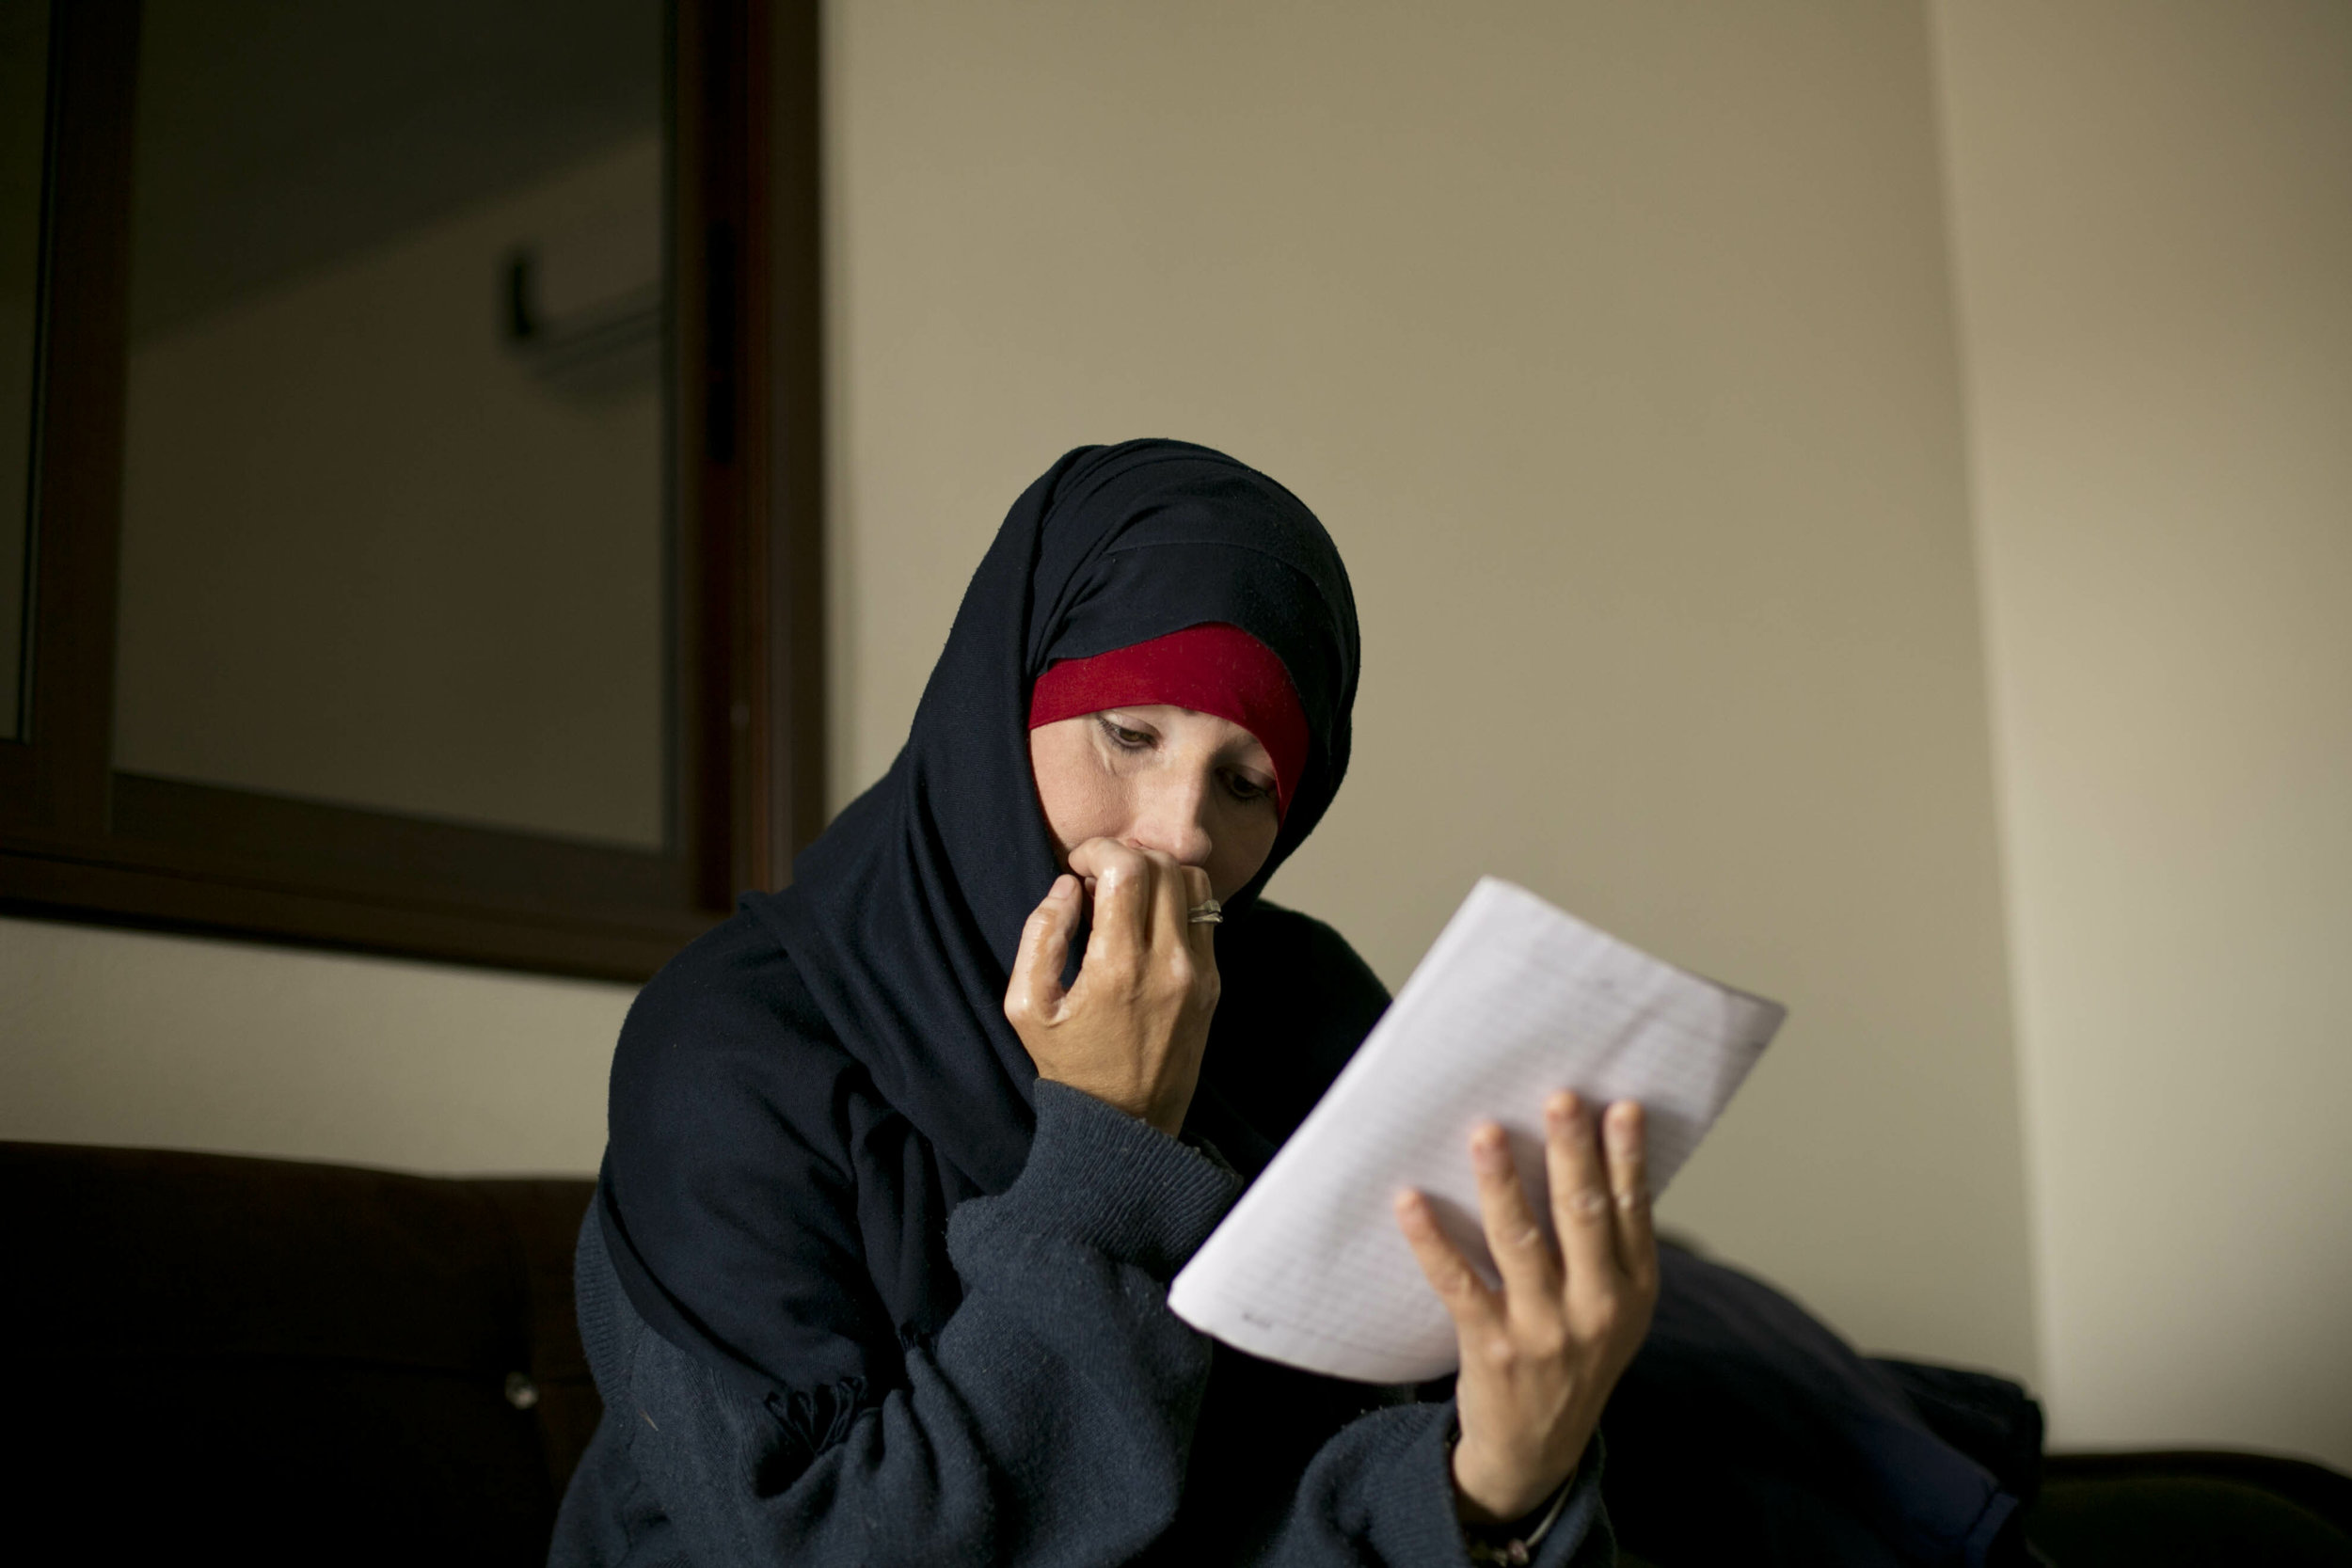 Kimberly Gwen Polman, a Canadian national, reads a letter she wrote to her countrymen at camp Roj in Syria on April 3, 2019. Polman followed her husband to Raqqa, Syria, the Islamic State group's capital at the time. (AP Photo/Maya Alleruzzo)